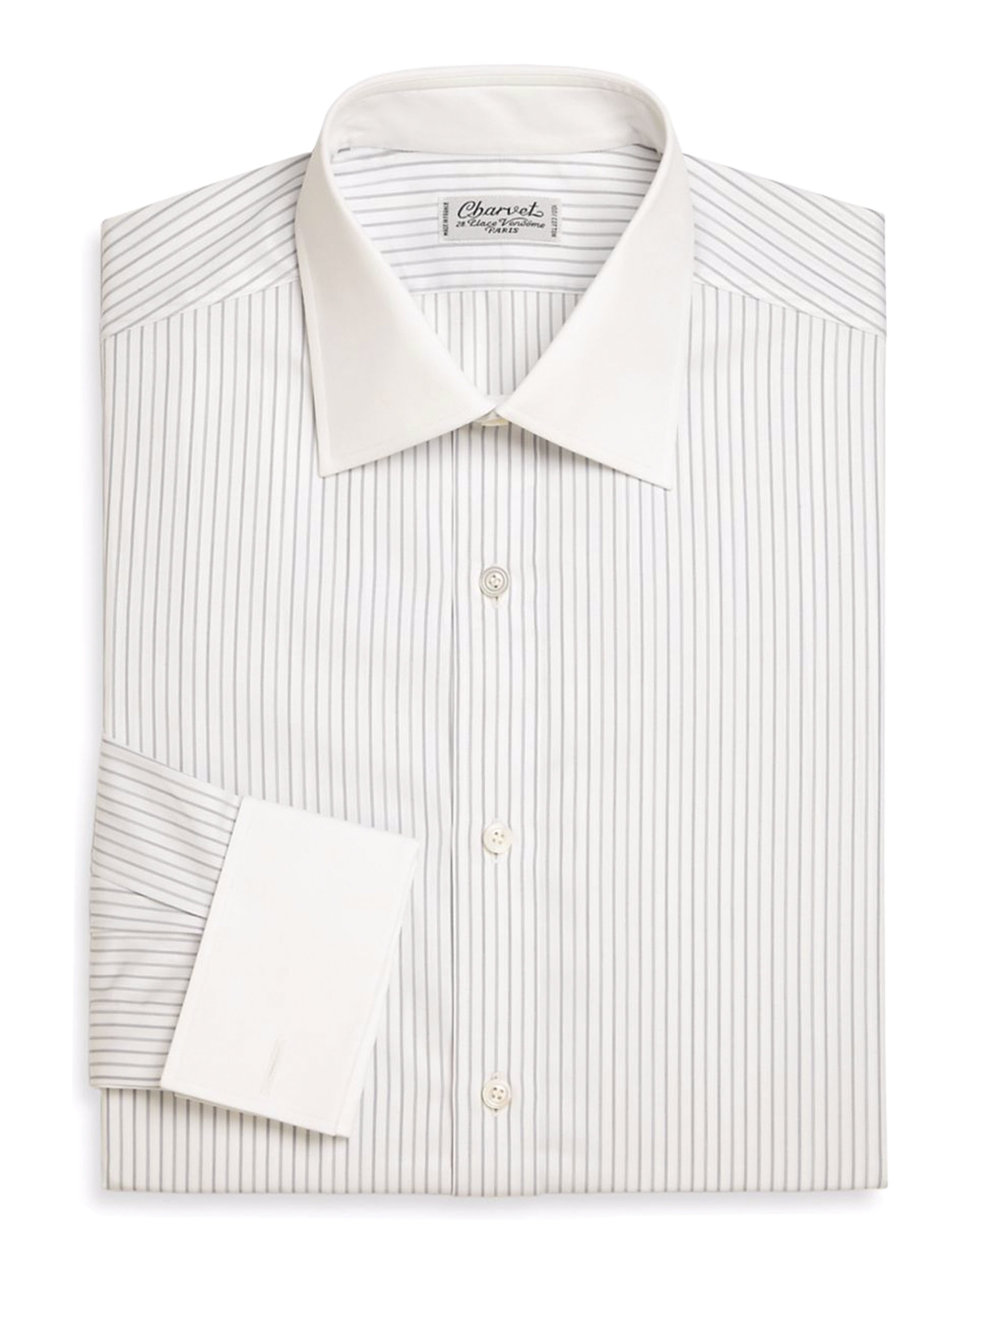 7.Regular-Fit Striped Cotton Dress Shirt by Charvet ‬$865,  saksfifthavenue.com